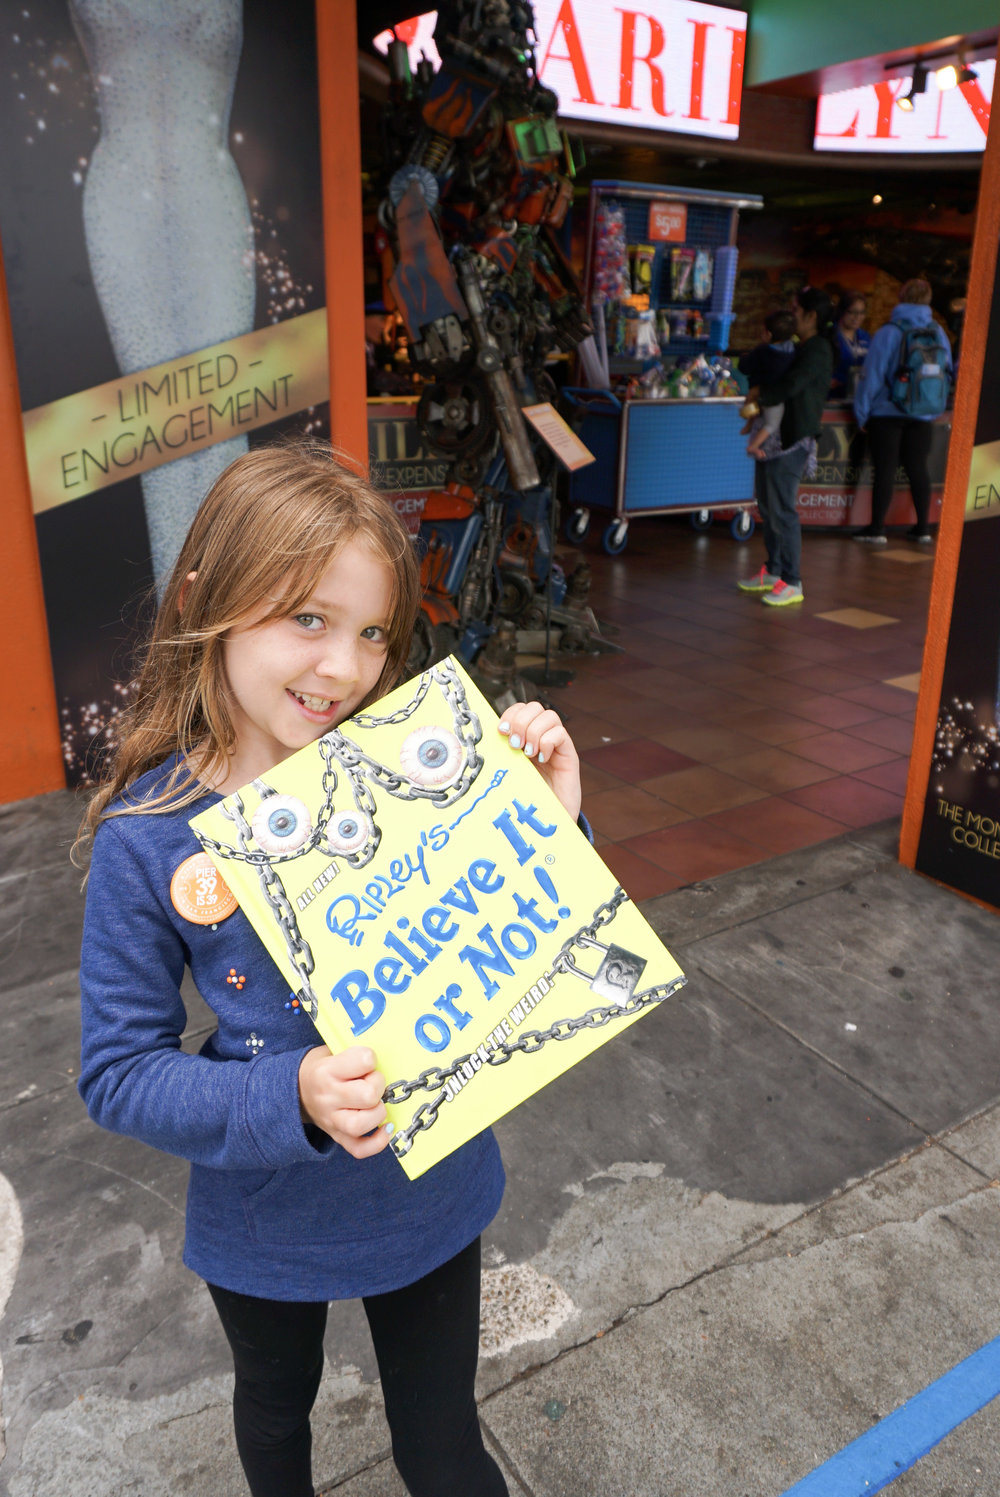 Ripley's Believe It or Not! at Fisherman's Wharf